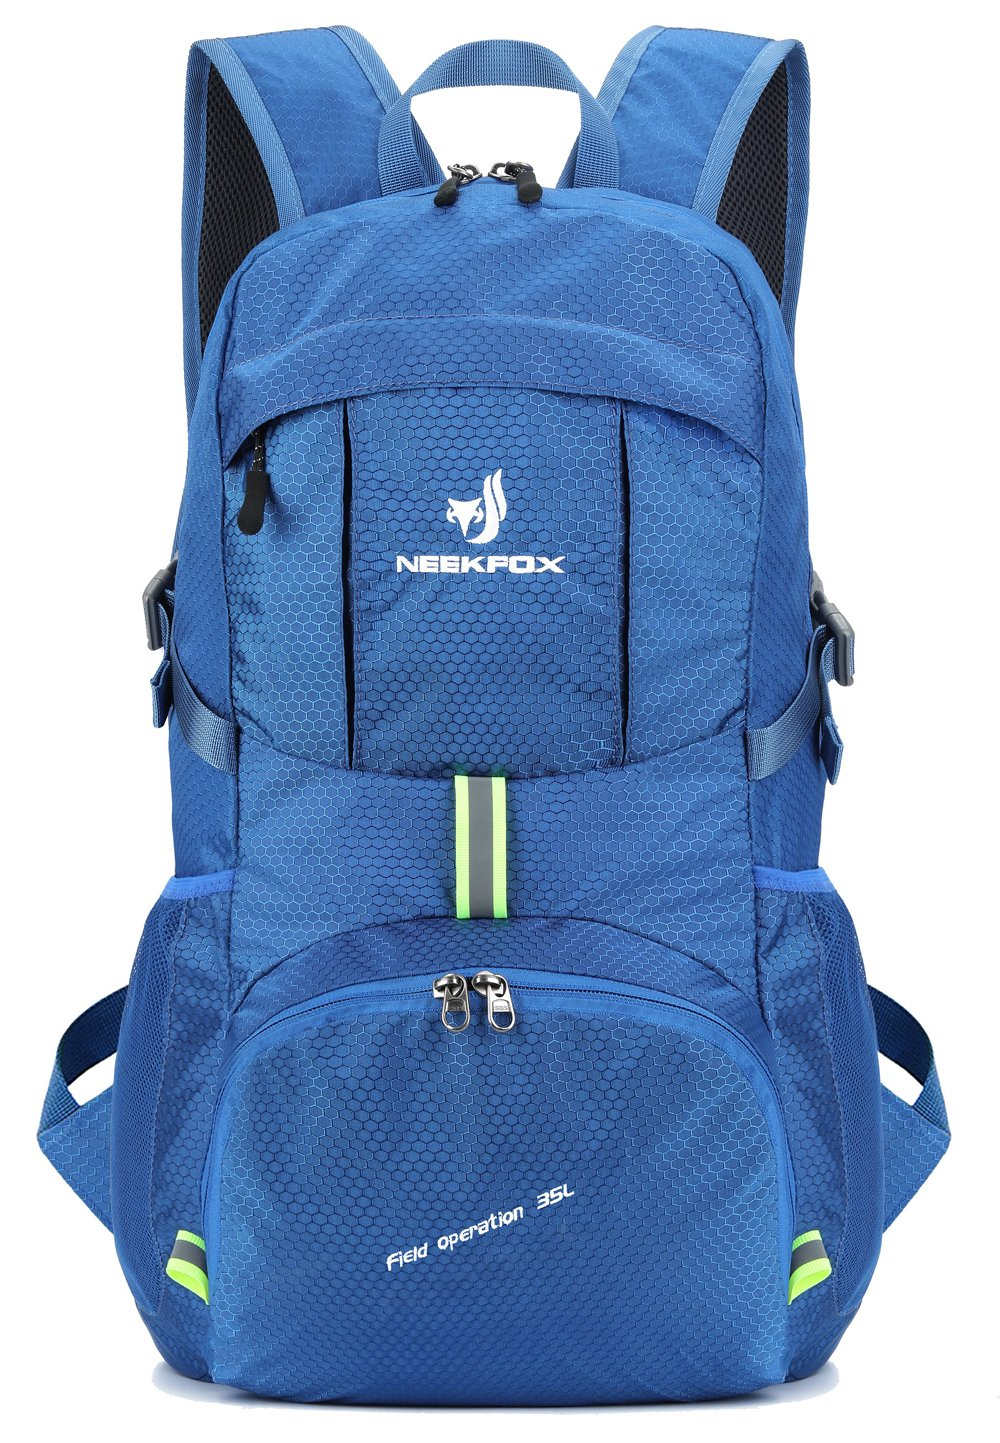 NEEKFOX Lightweight Packable Travel Hiking Backpack Daypack,35L Foldable Camping Backpack,Ultralight Outdoor Sport Backpack (Blue)